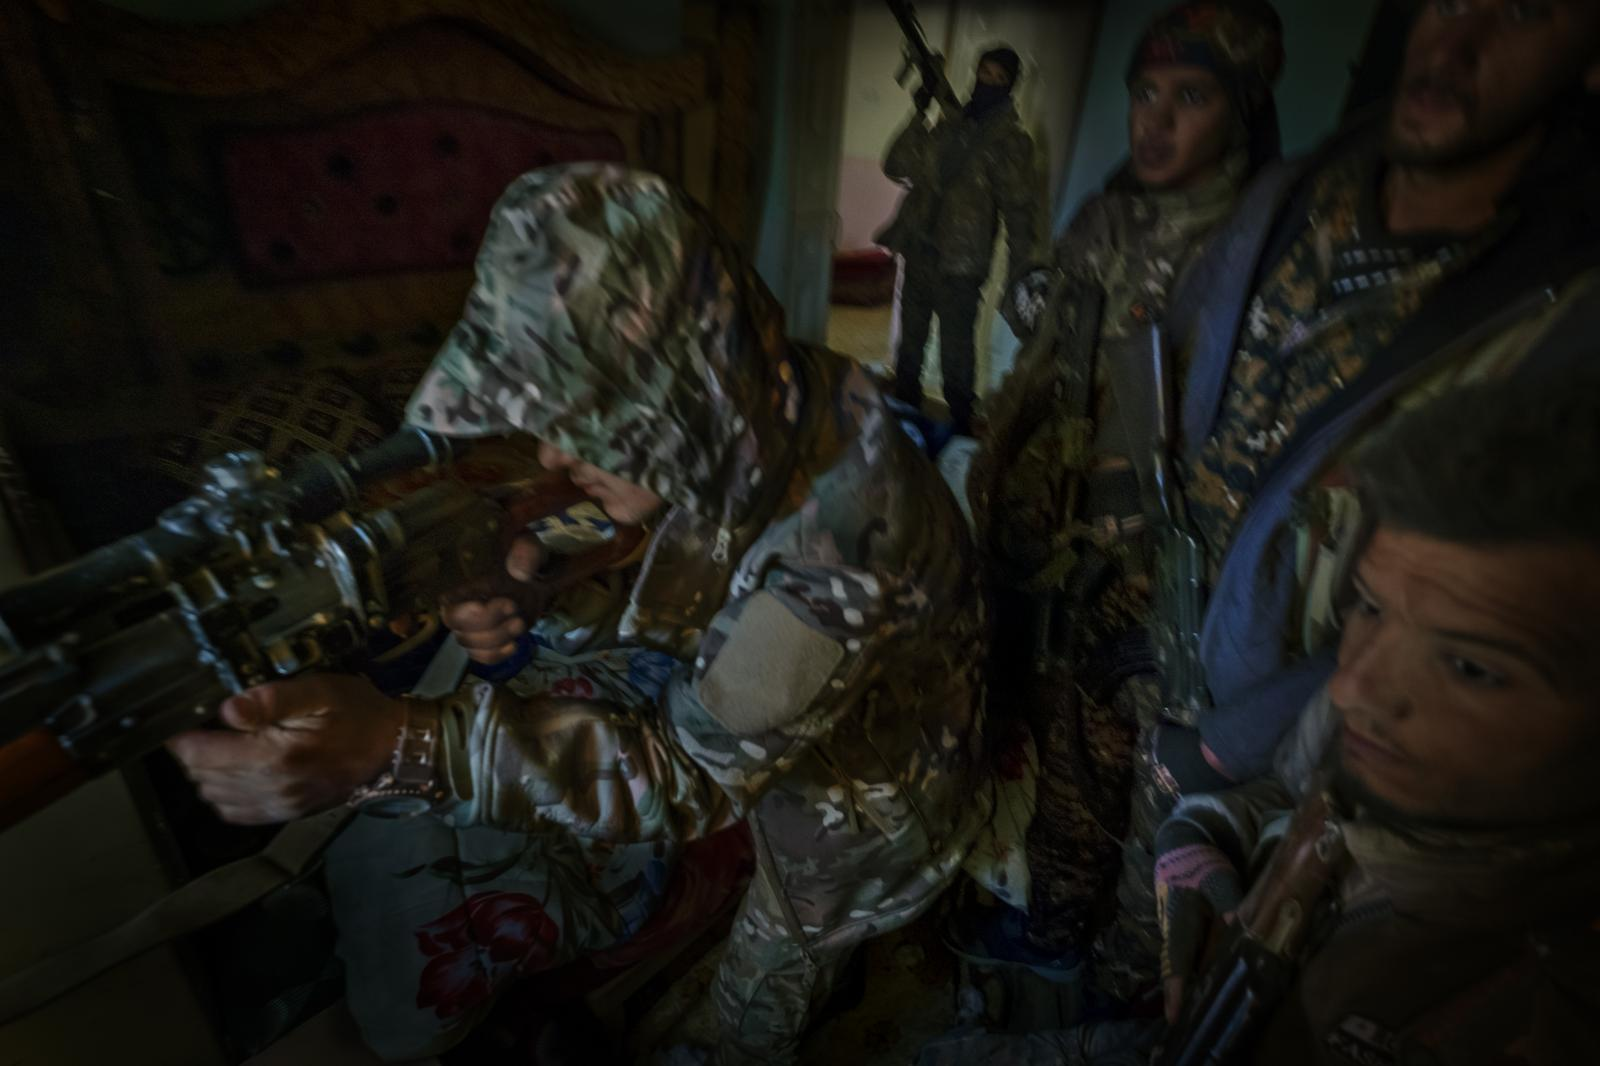 Members of the Syrian Democratic Forces (SDF) with a sniper, in a position in a house on the front lines in Deir ez-Zor, during the last battle and the final collapse of the ISIS caliphate. The SDF were created in October 2015, and are a military alliance of Kurdish, Arab, Assyrian, Armenian, Turkmen and Circassian militias (Syria, 2019)